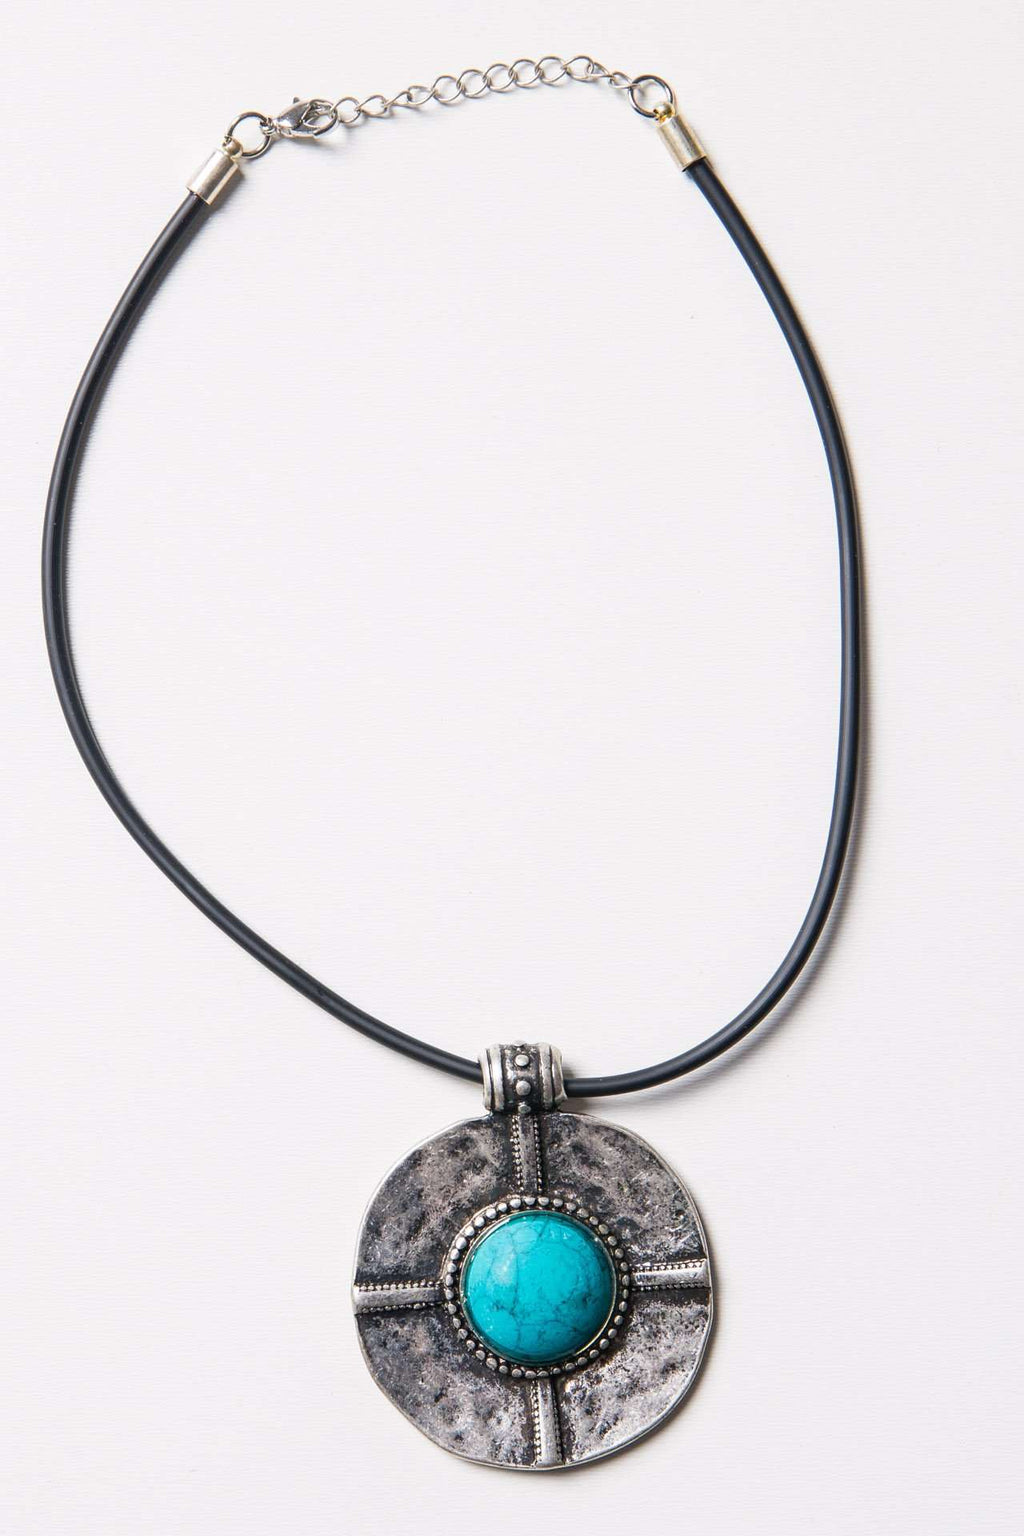 Antiqued Stone Necklace,Accessories